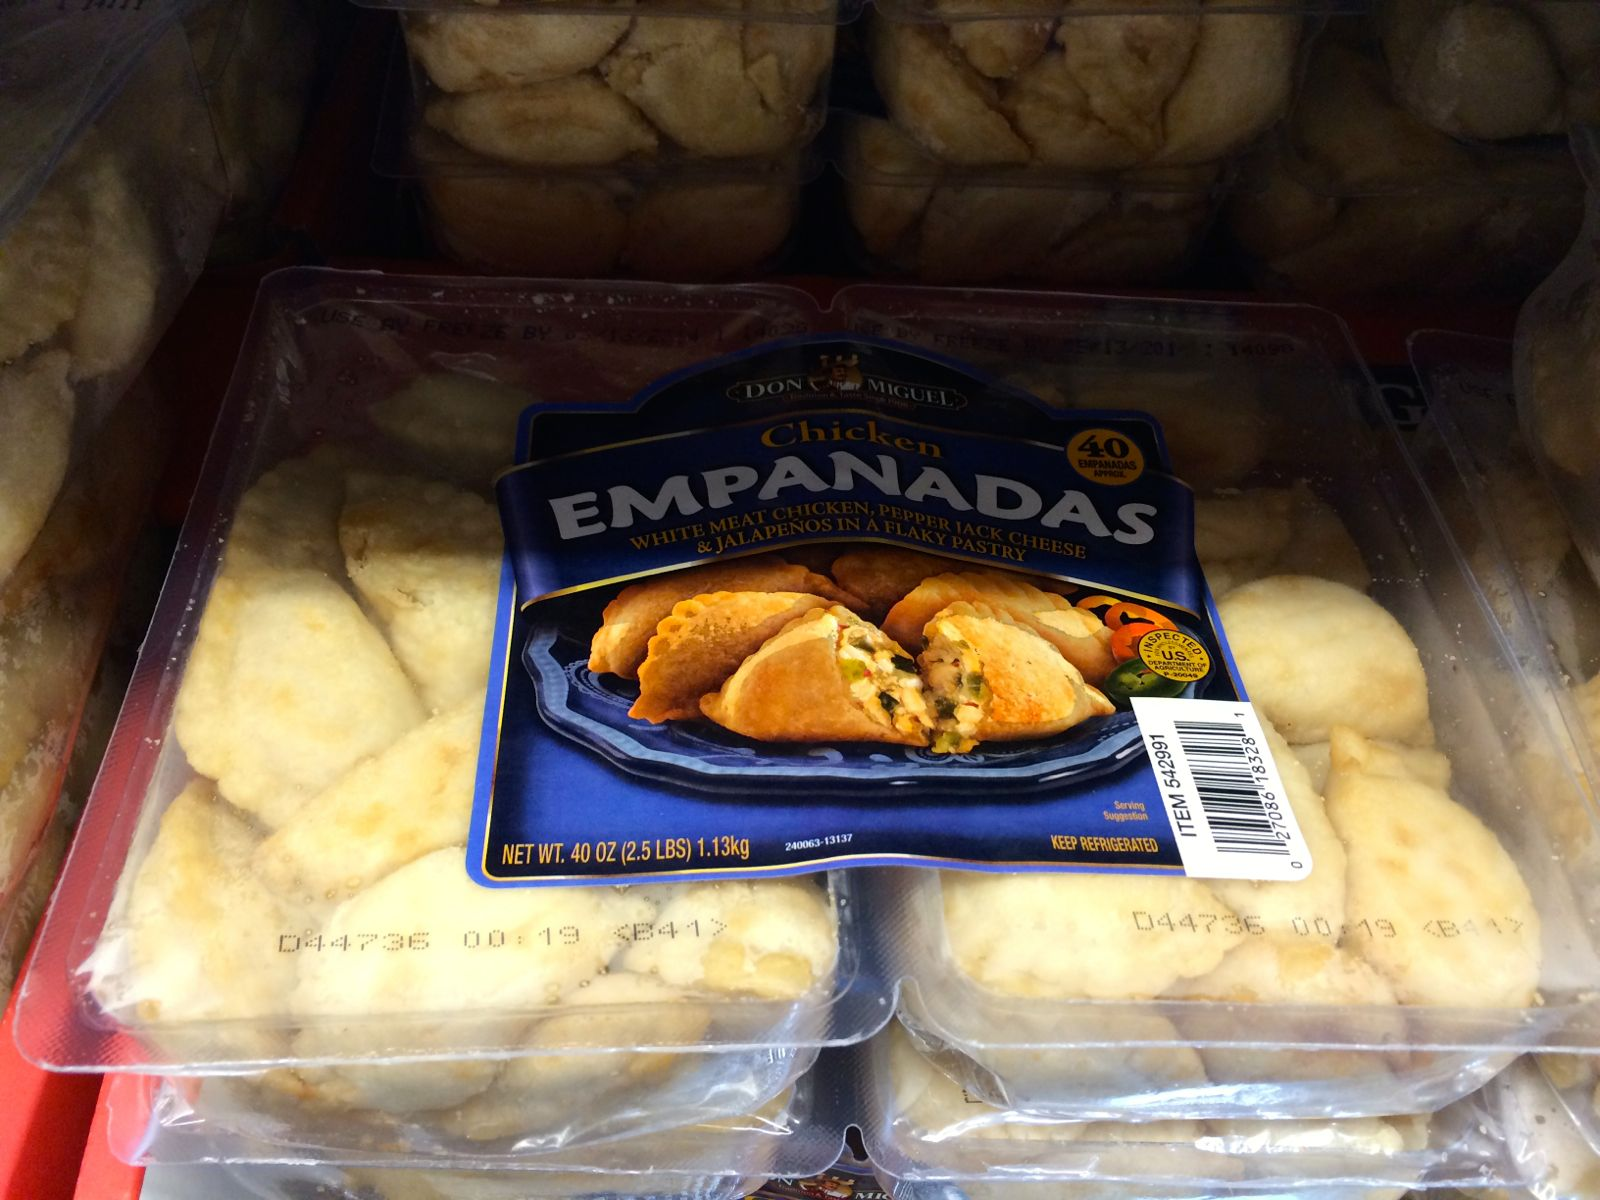 Costco Ornabakes